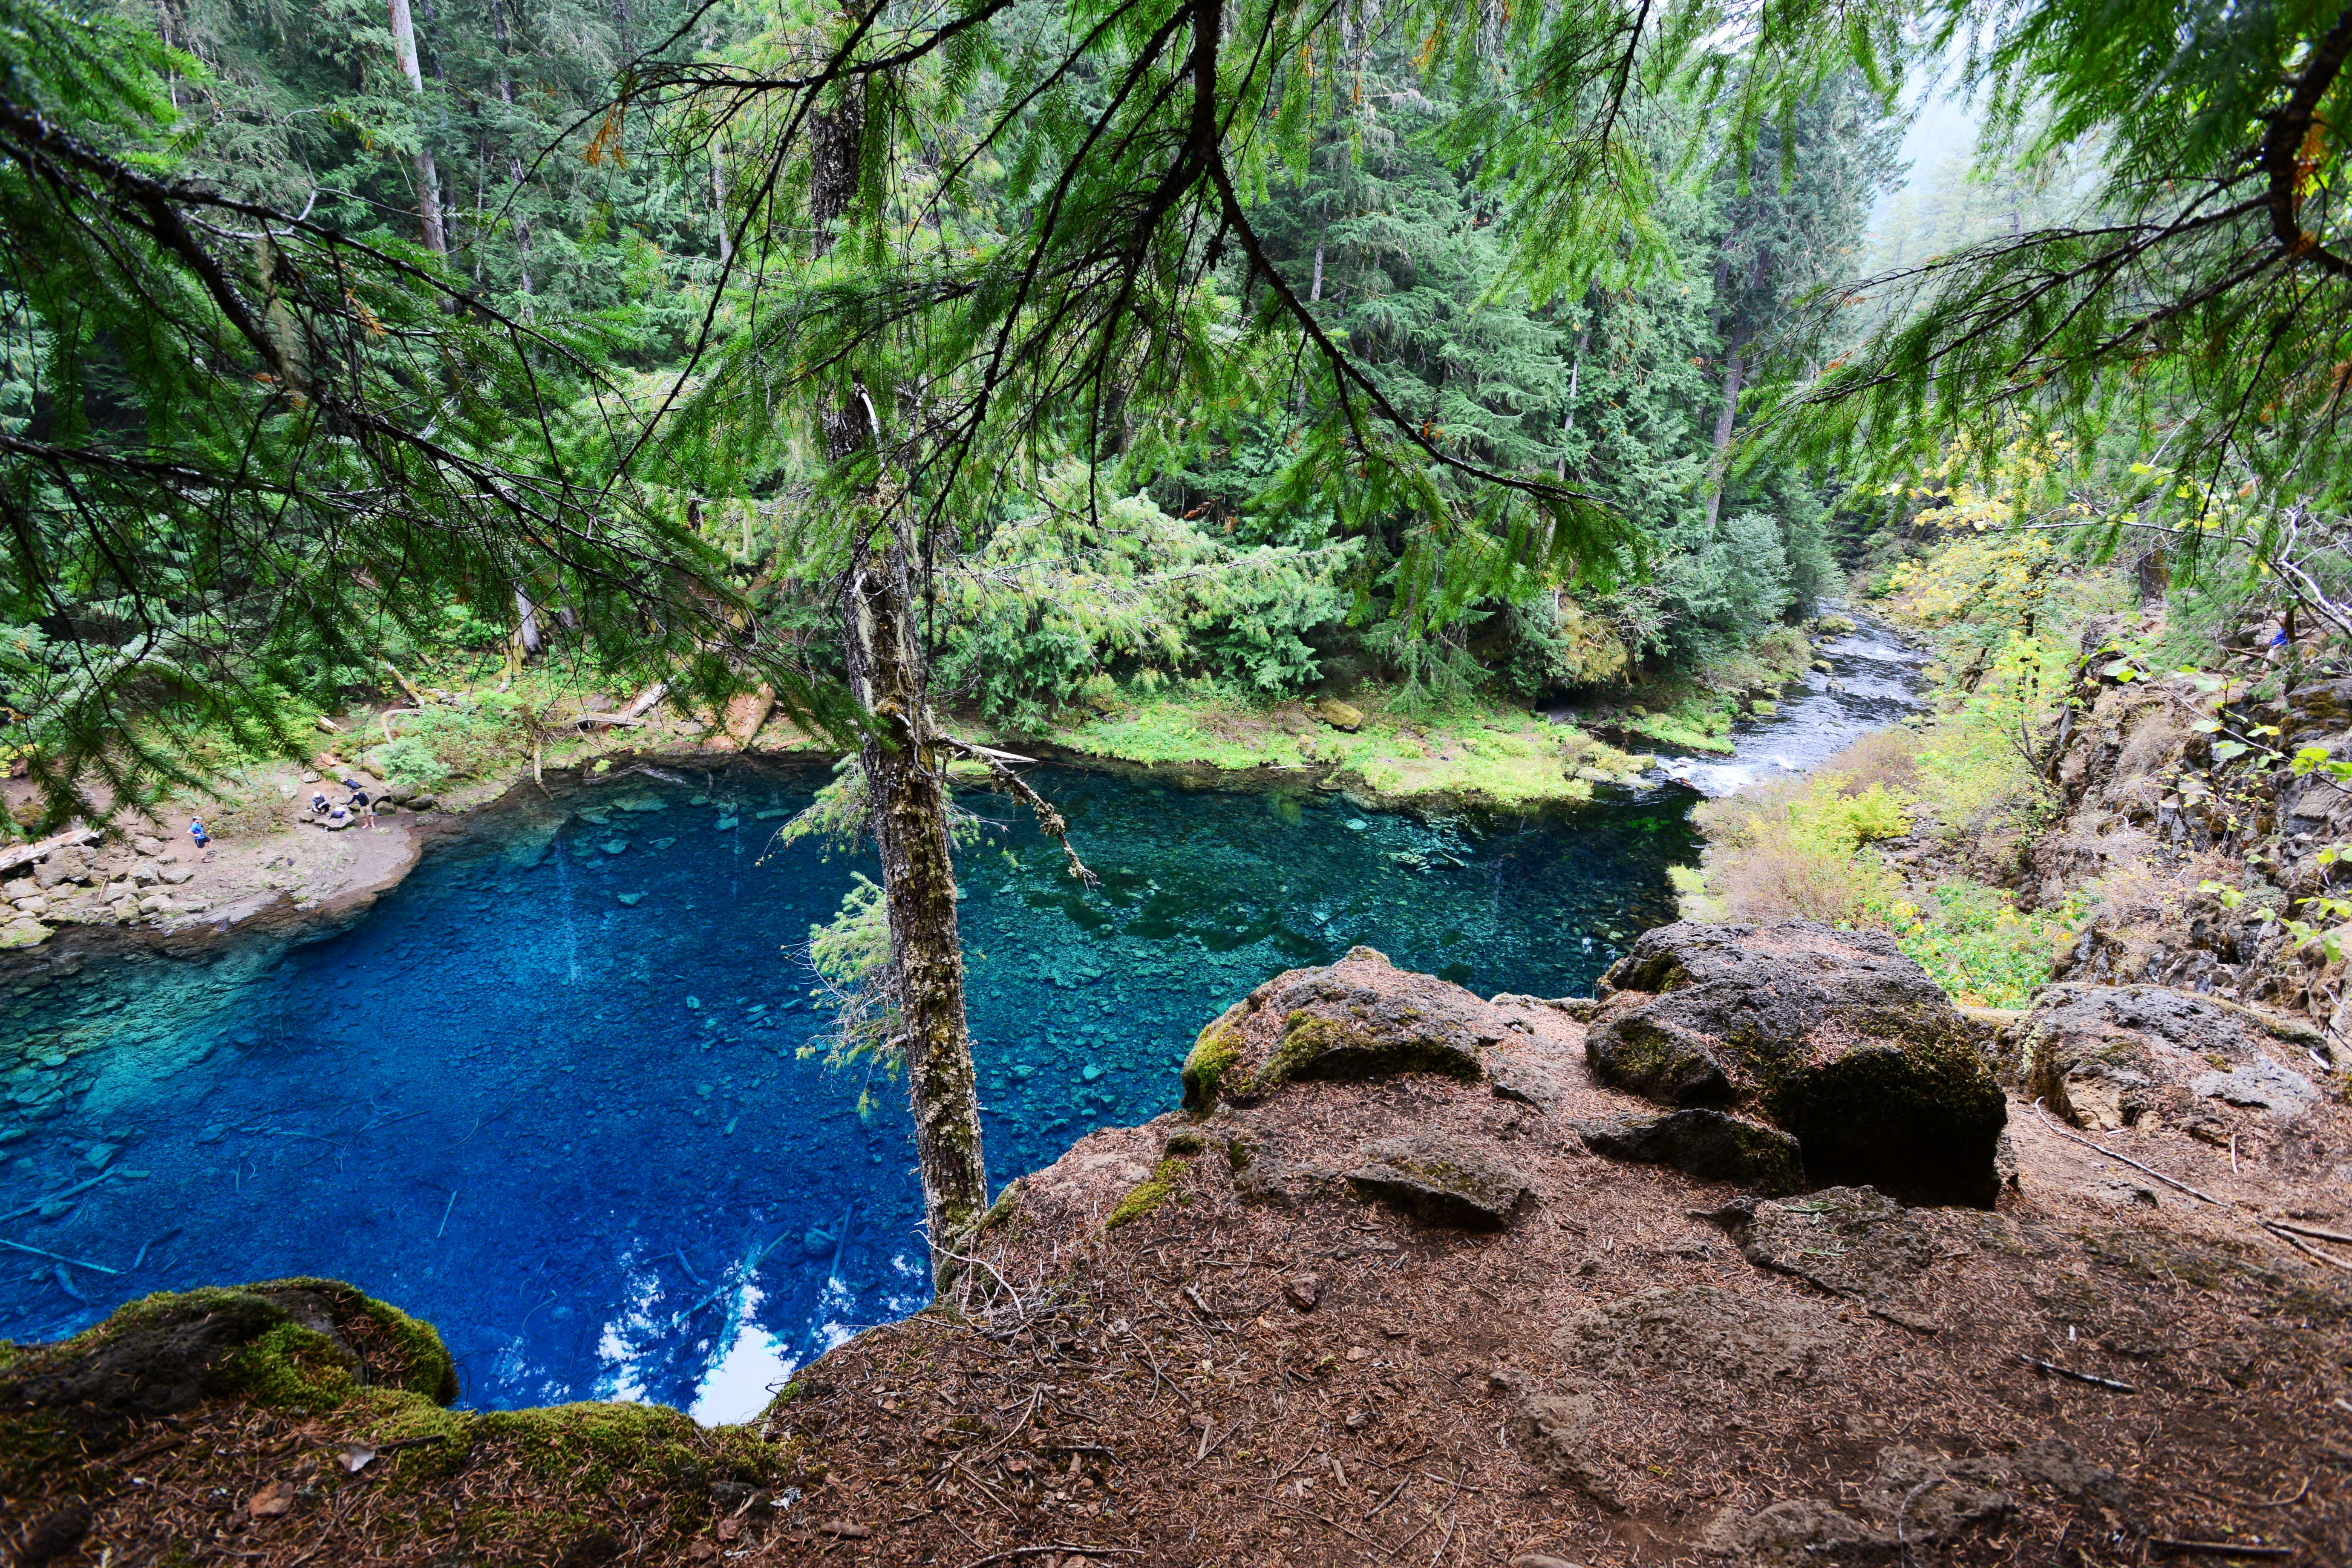 Tamolitch blue pool Waterfall Statesman Journal Should Feds Take Action To Prevent More Injuries At Blue Pool